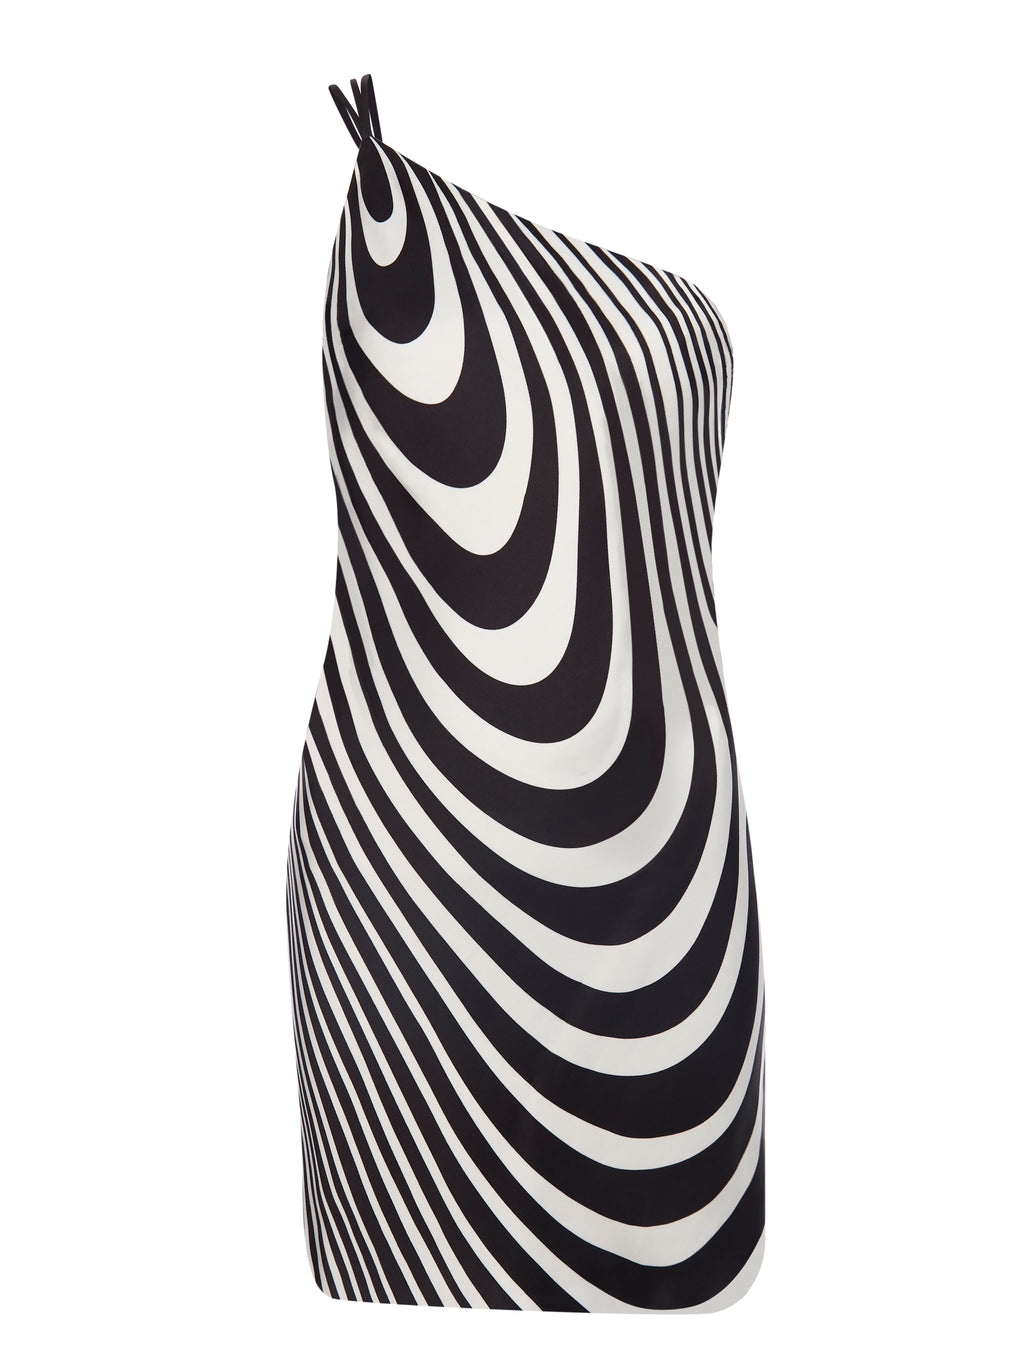 Lithium Illusion Print Dress - Annie's Ibiza